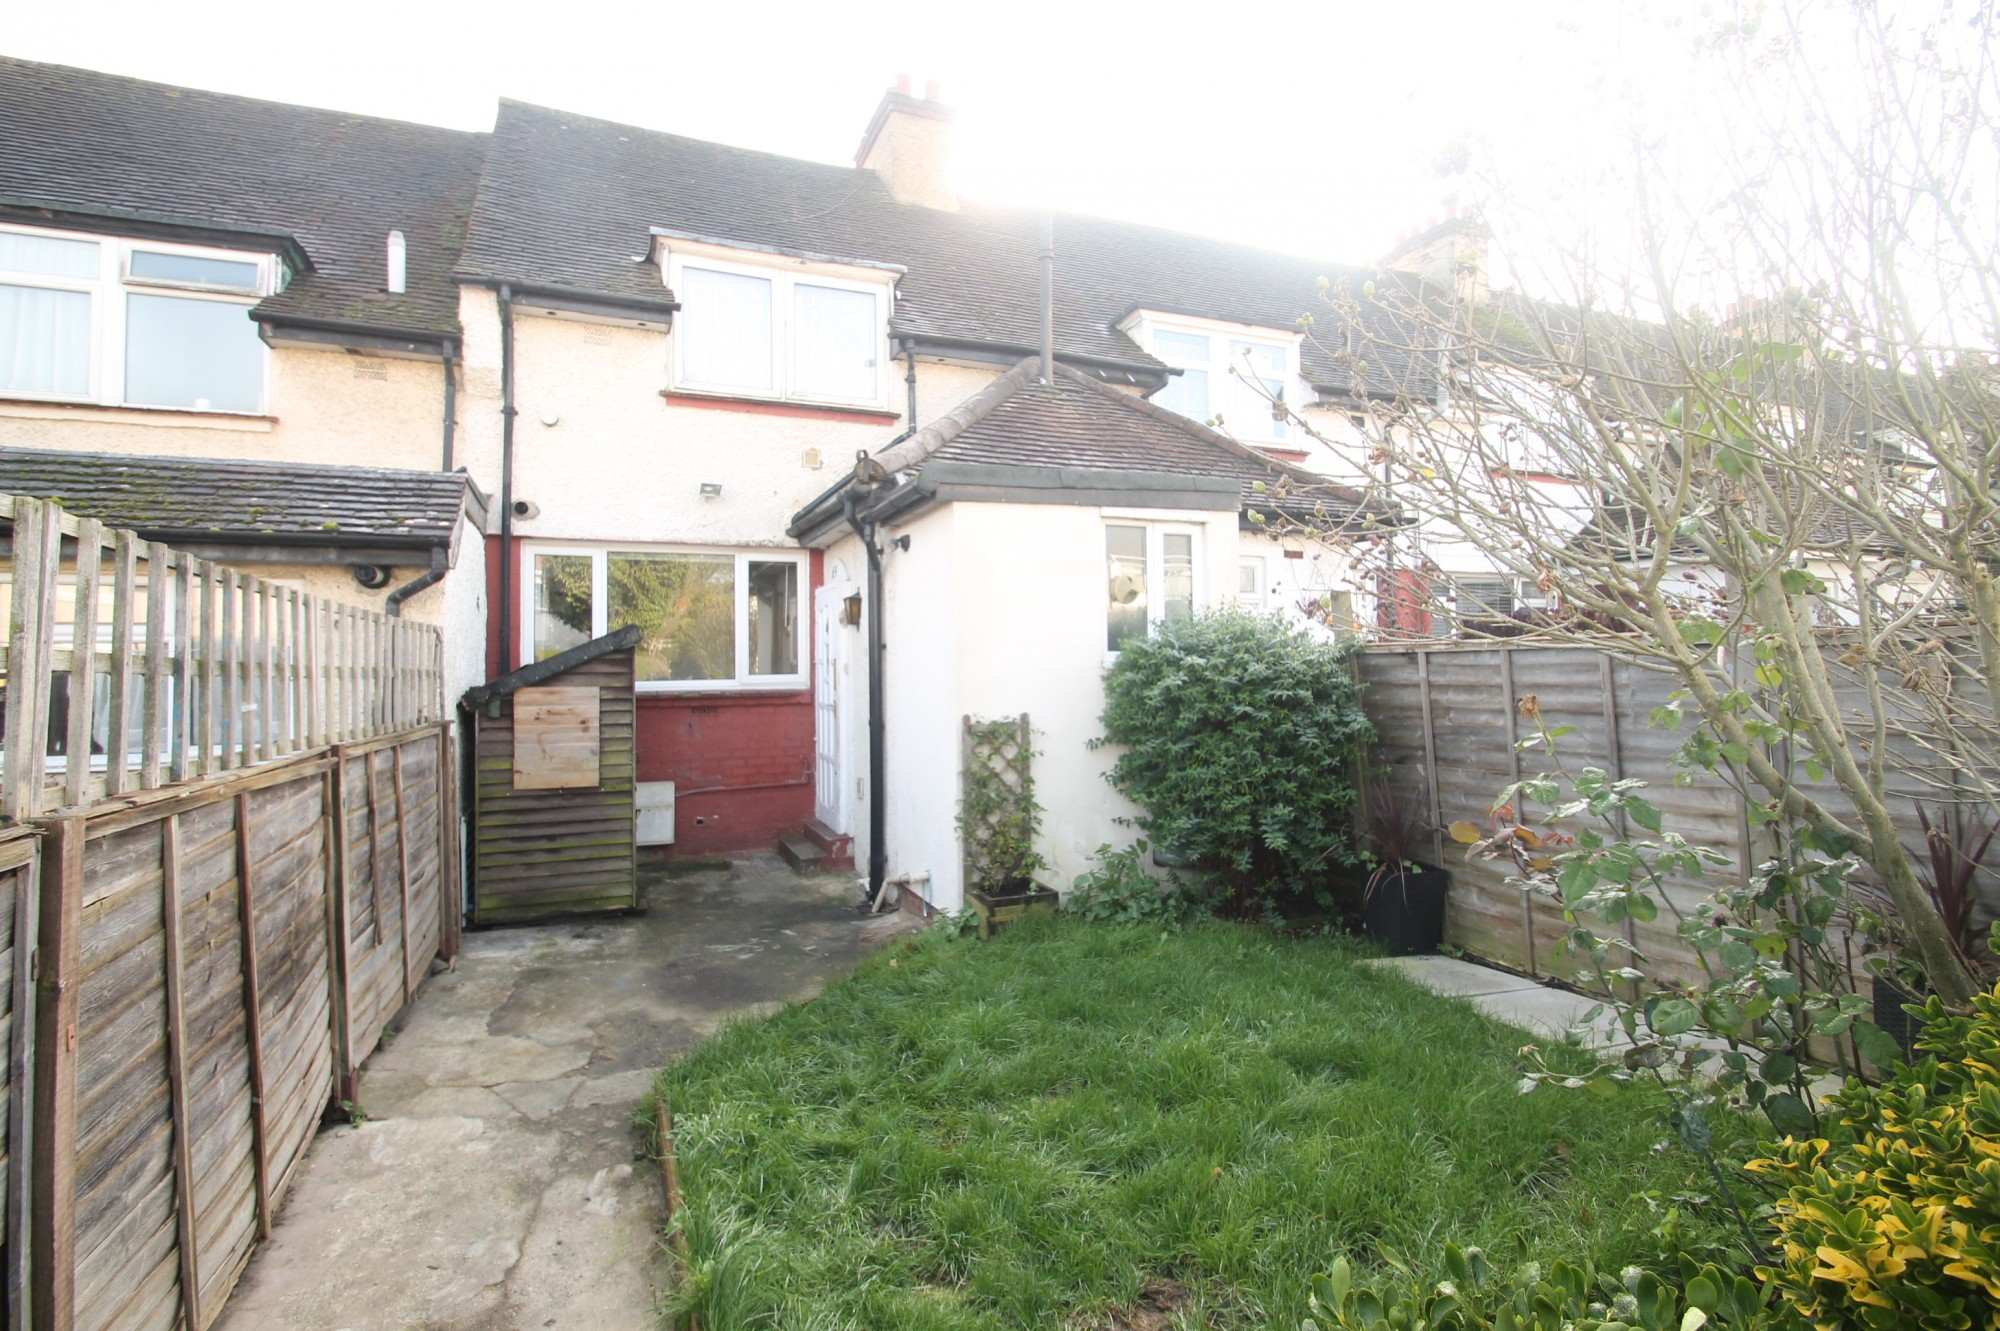 Image of Property for Sale in Epsom